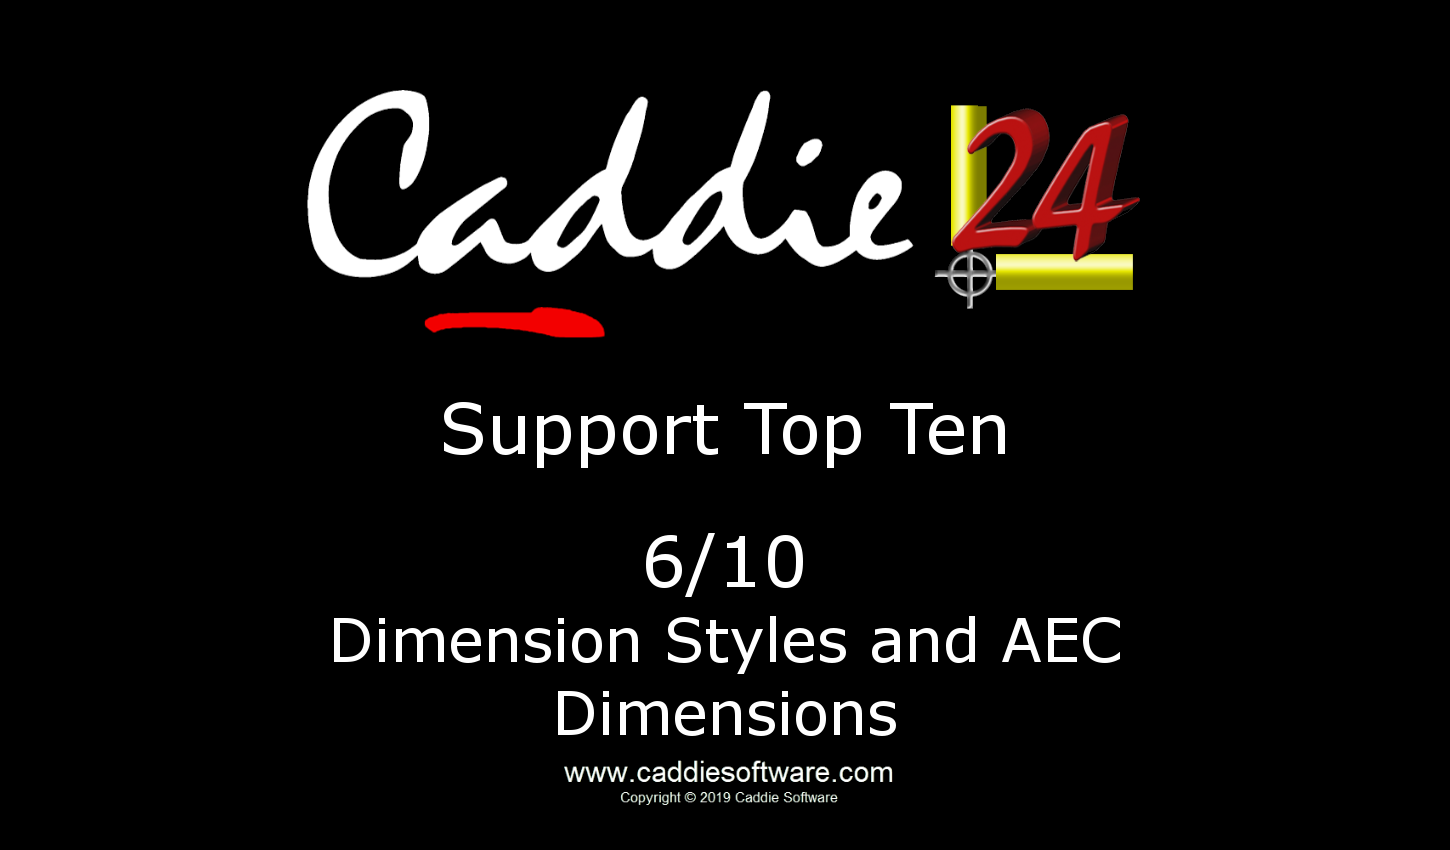 # 6/10 Dimensions and AEC Dimension Styles